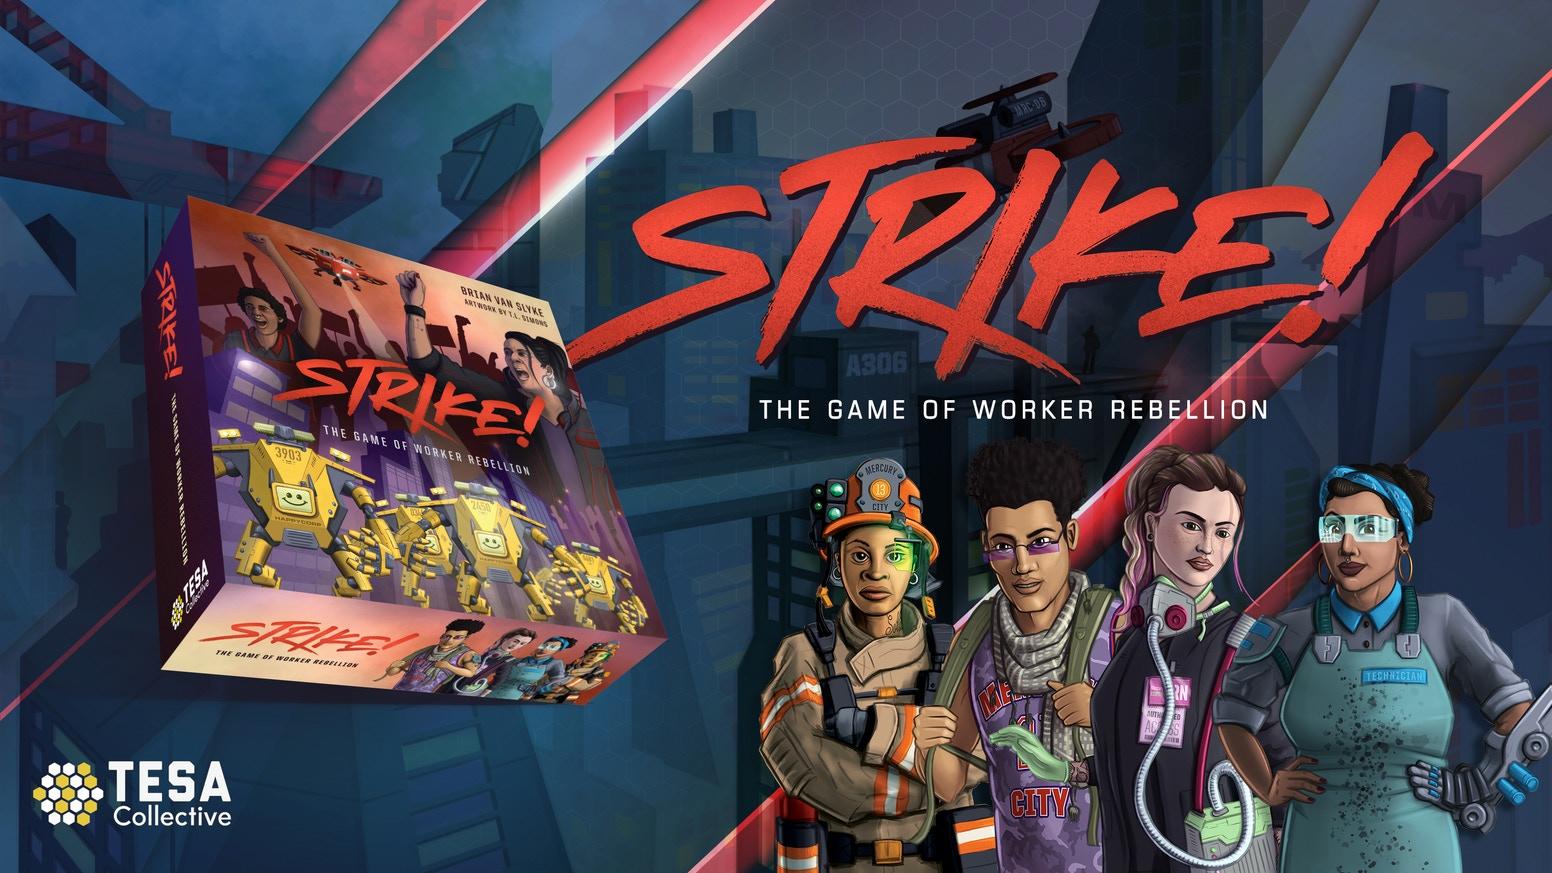 Lead a city-wide strike of workers against the diabolical HappyCorp in this cooperative board game!